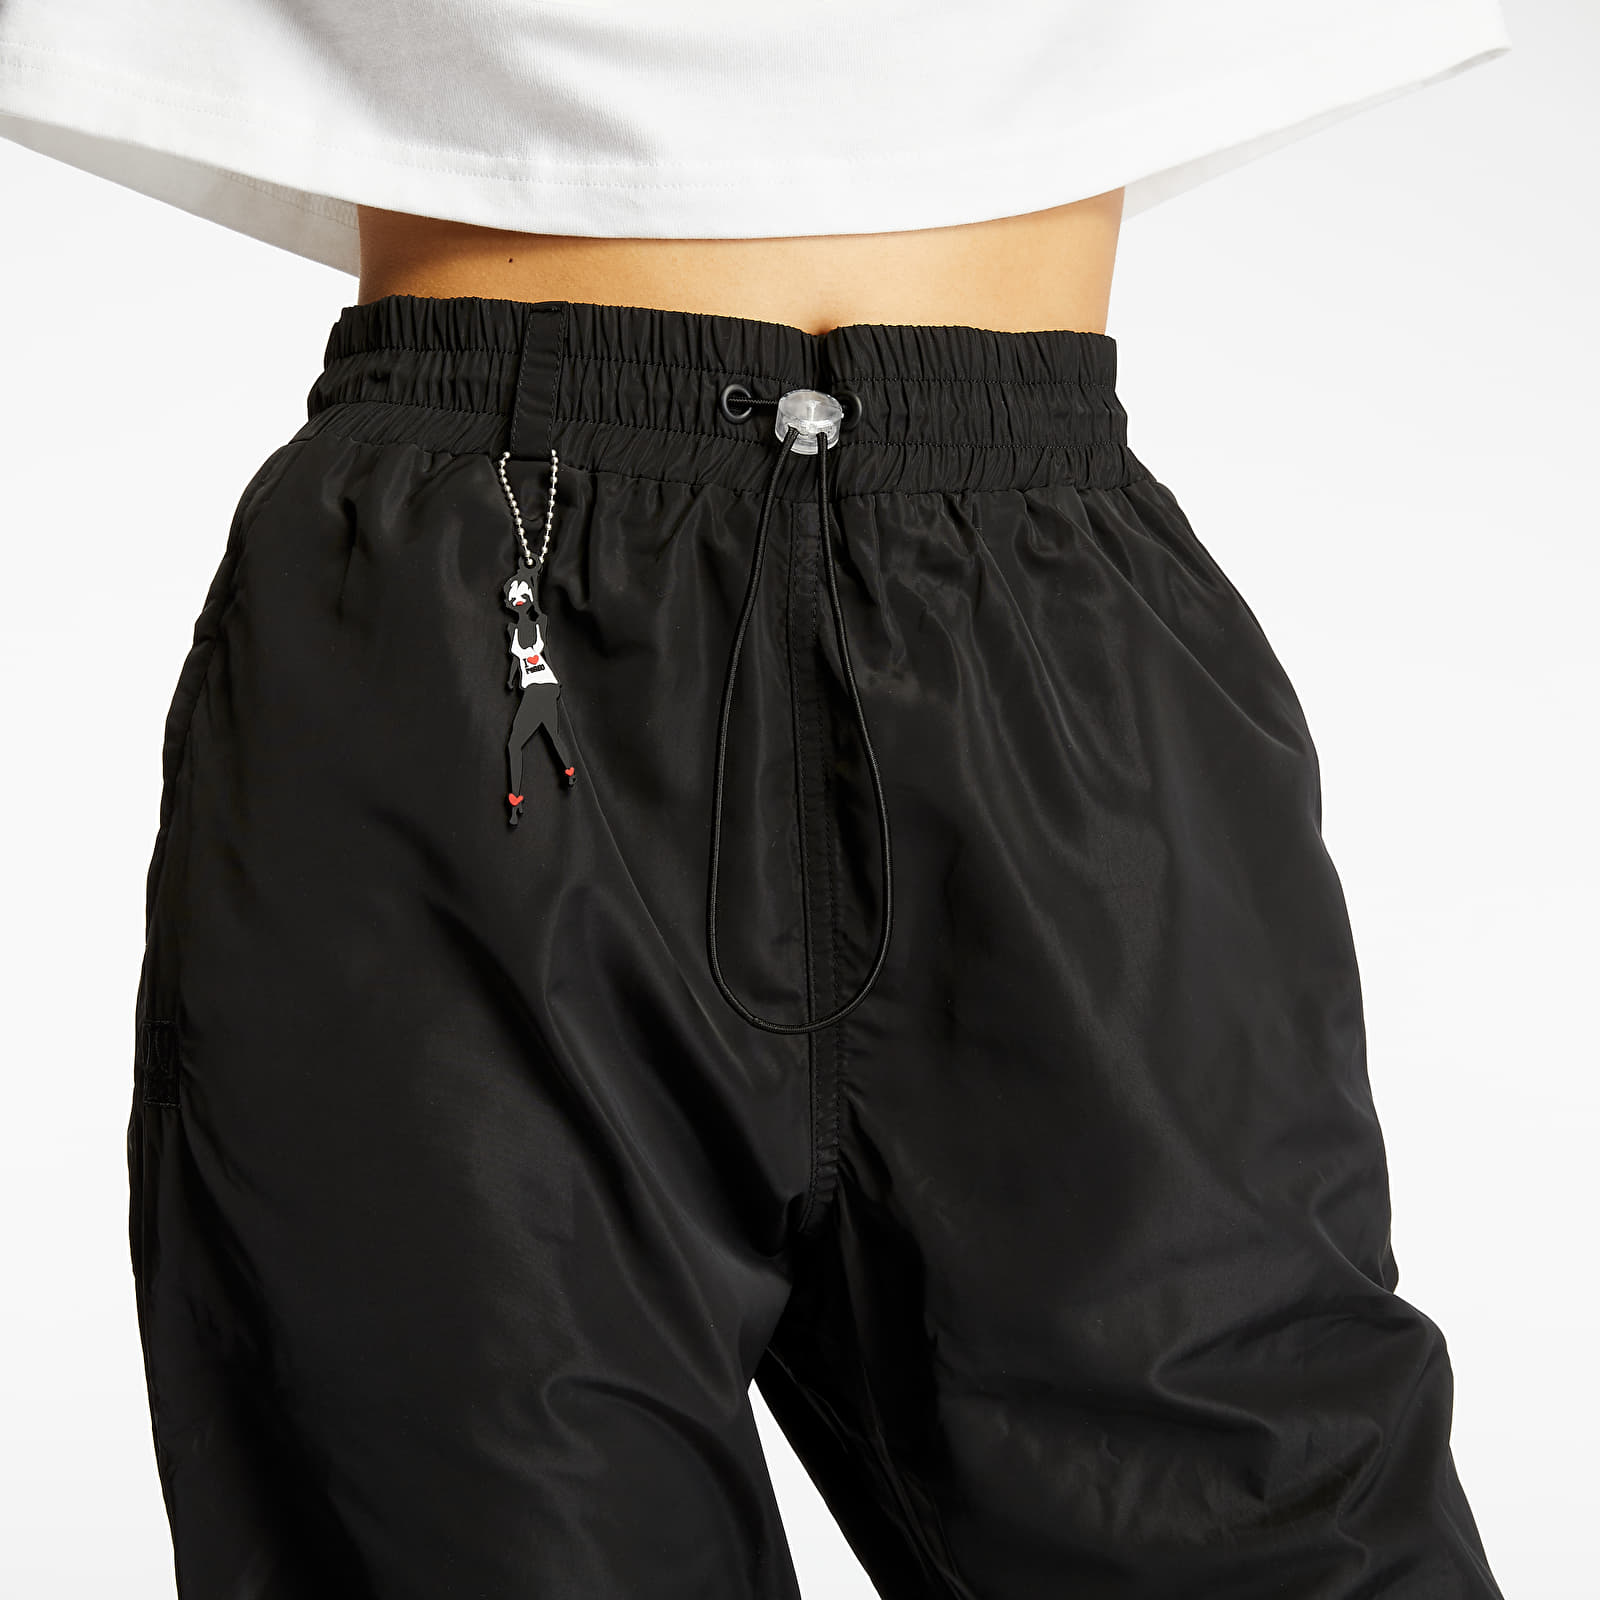 Pants and jeans LIFE IS PORNO Women's Pants Black